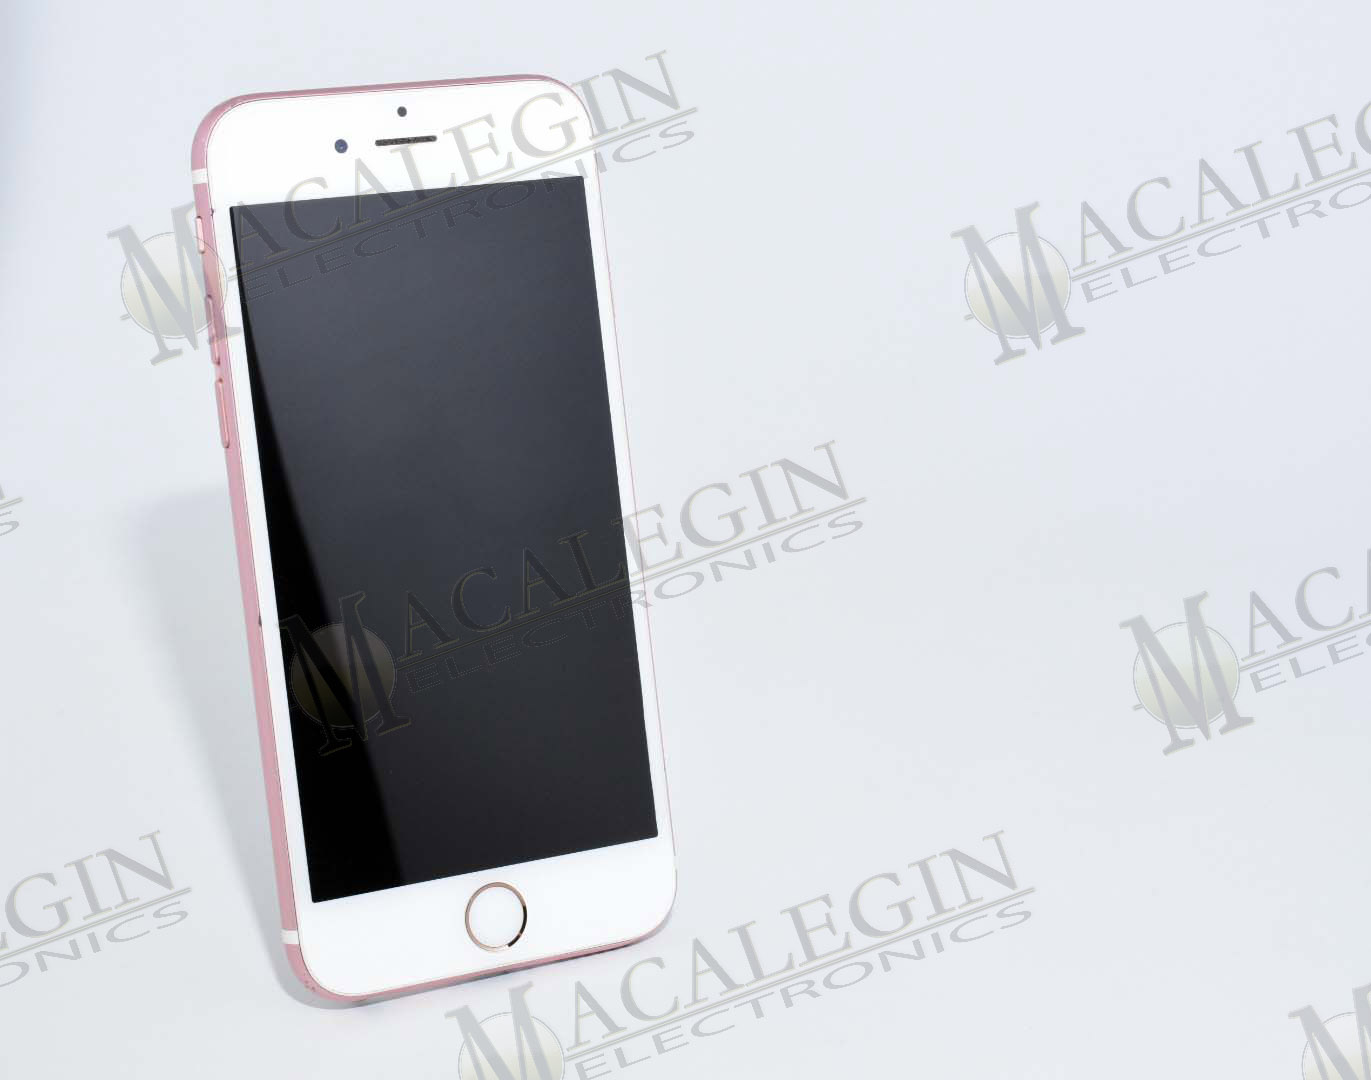 Used APPLE A1633 IPHONE 6S 128GB UNLOCKED in PGL condition for sale from Macalegin Electronics at $143 a piece.